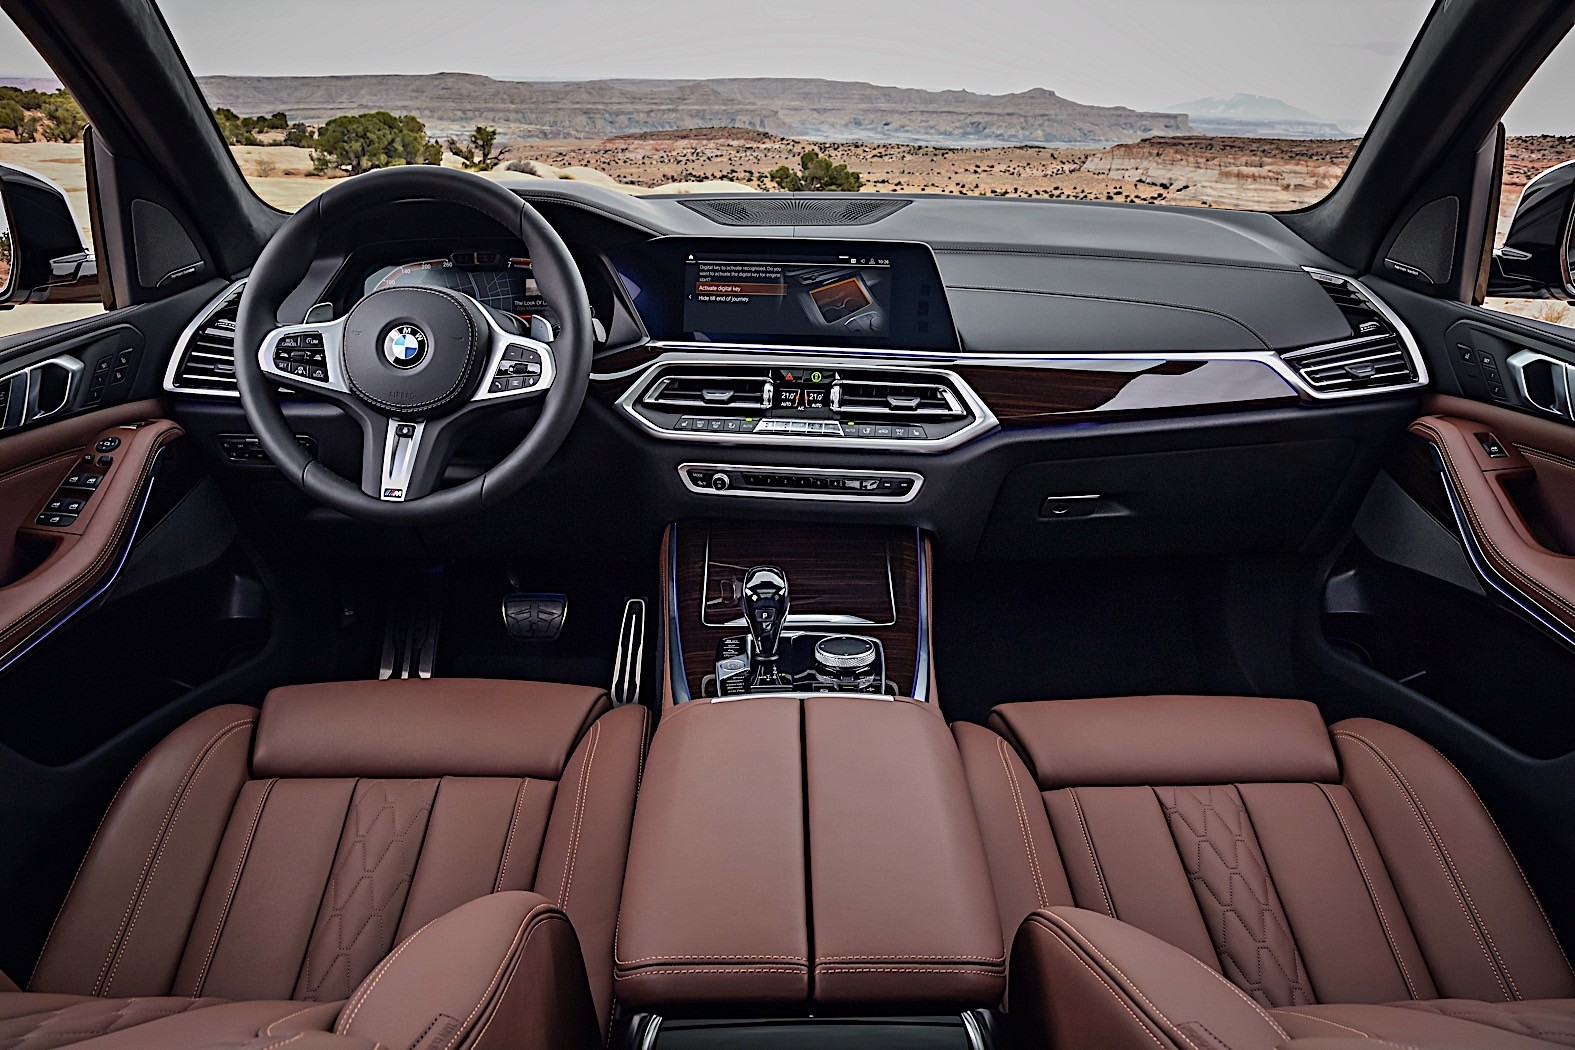 2019 bmw x5 breaks cover as bigger meaner suv autoevolution for Bmw x5 interior